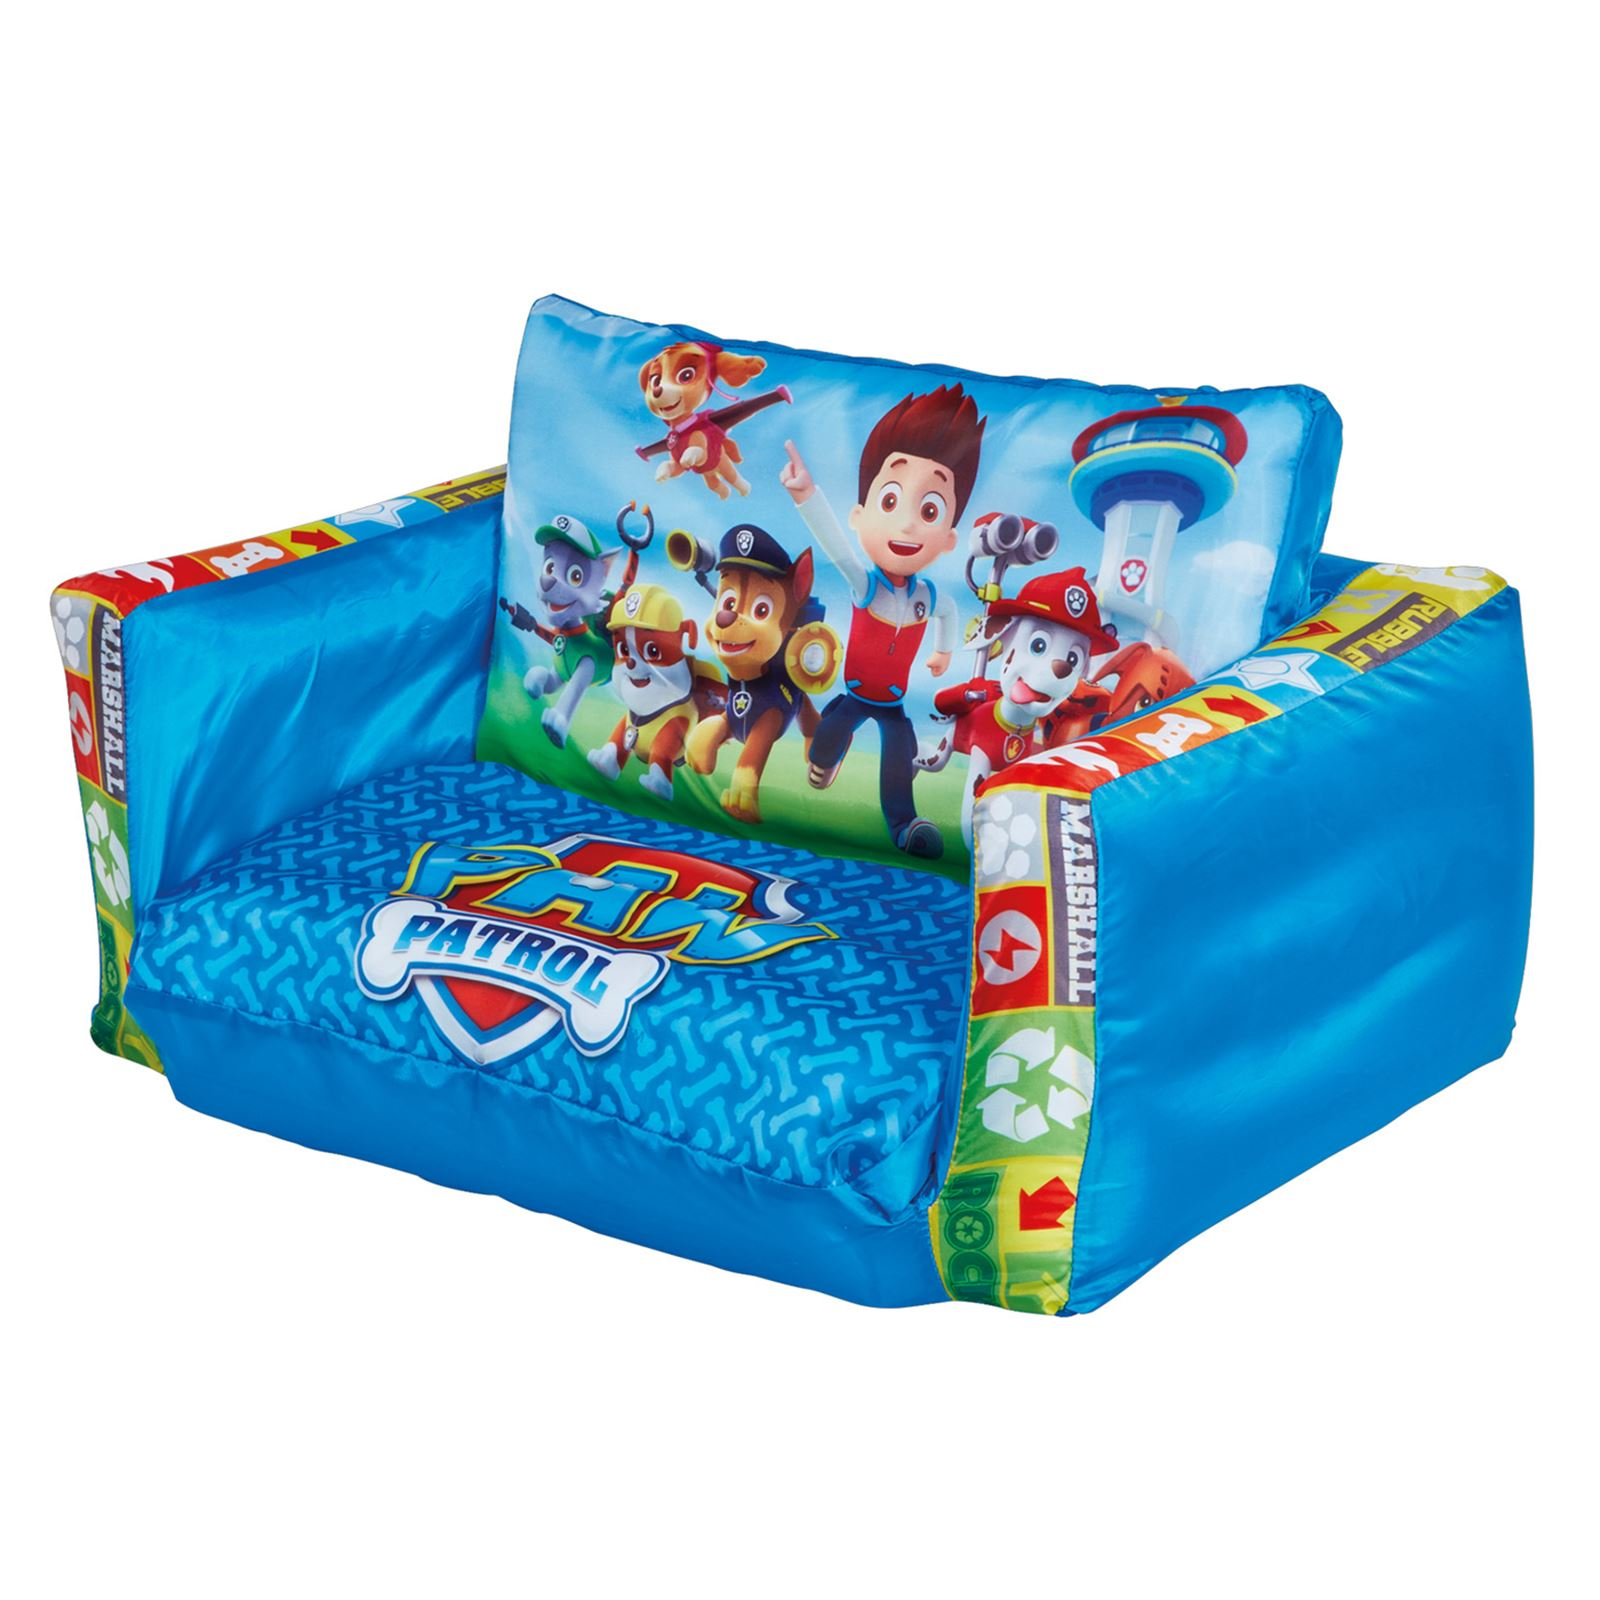 Inflatable furniture for kids - Disney Princess Inflatable Flip Out Mini Sofa And Lounger 2in1 Kids Toddlers